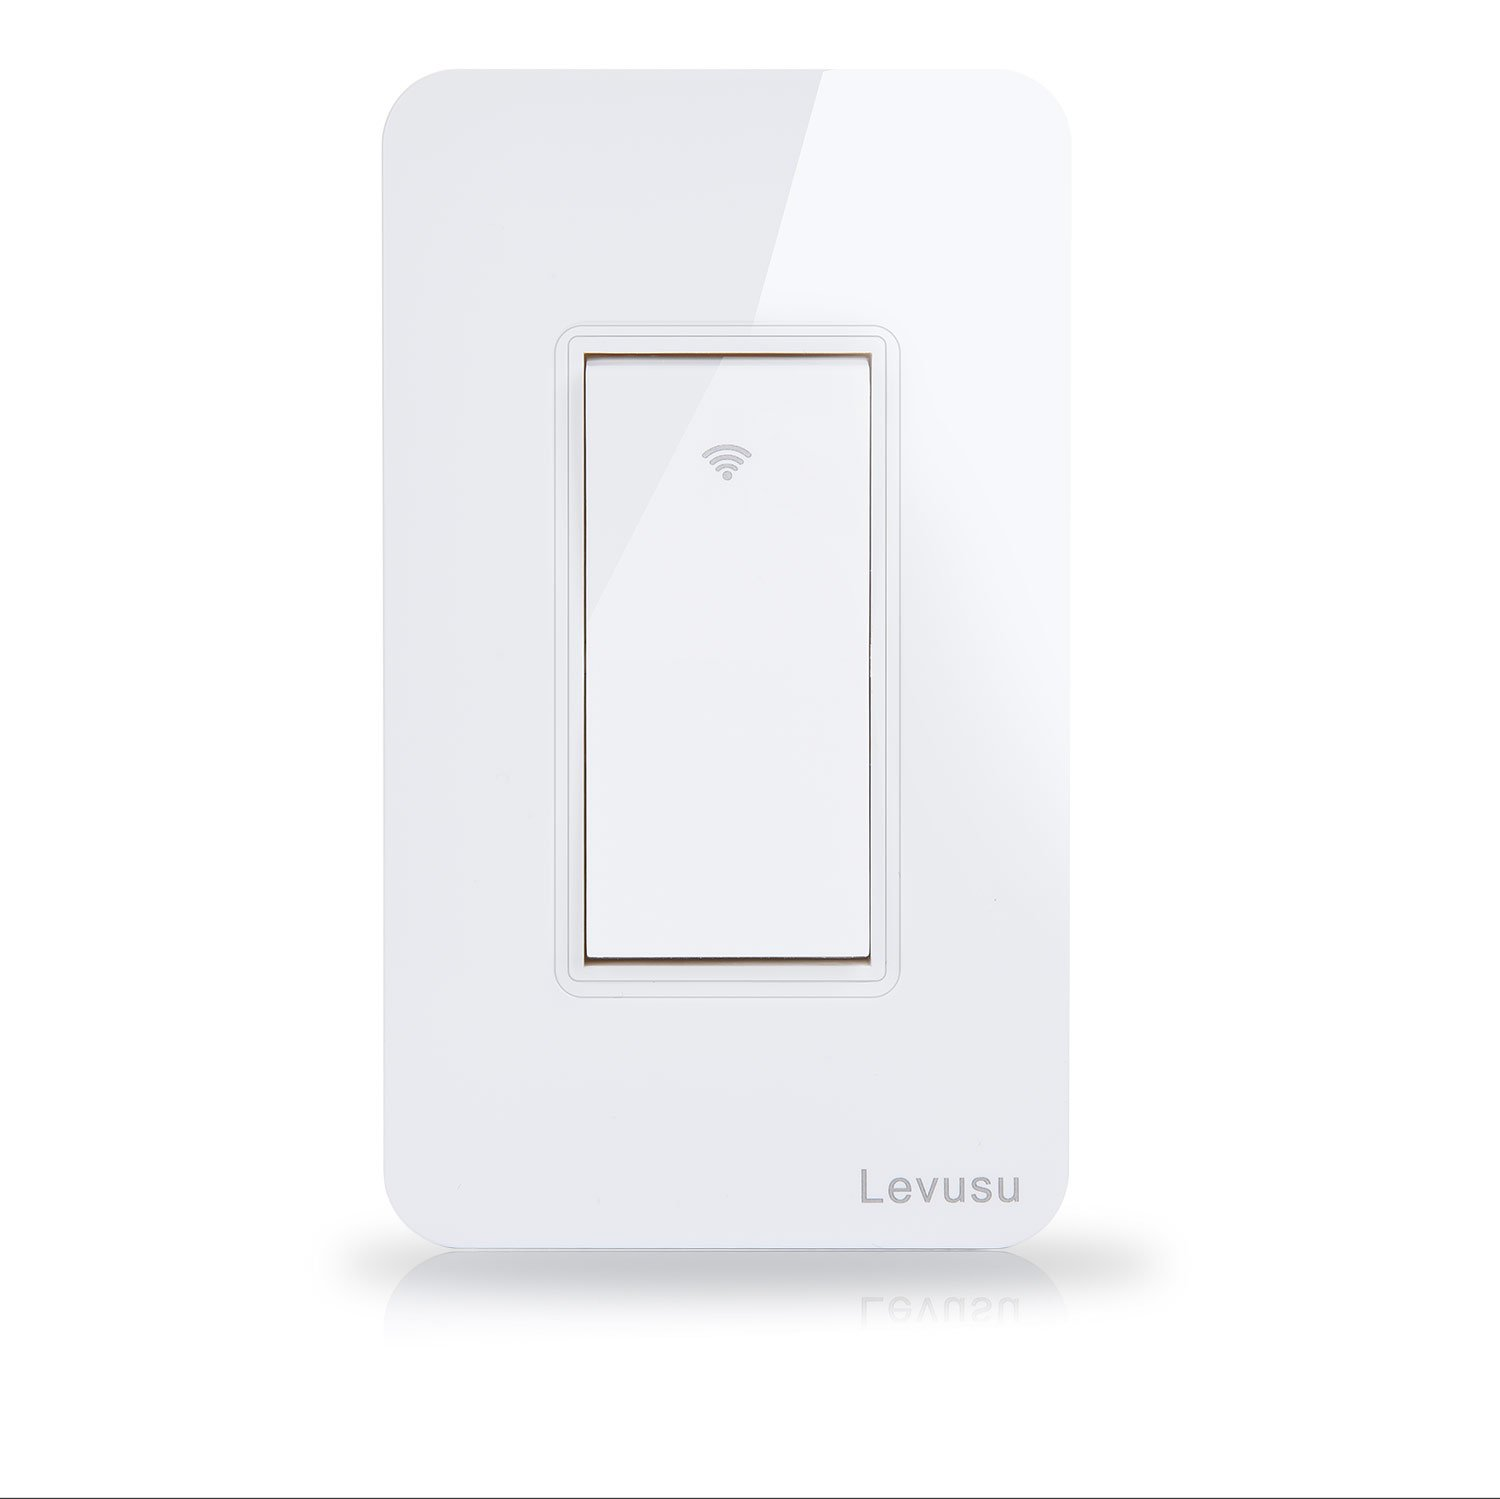 Levusu Smart Wi-Fi Light Wall Switch, Rocker Switch, Timing Function, Wireless Remote Control Switch, Grounding, Compatible with Alexa Echo, White (Rocker switch)